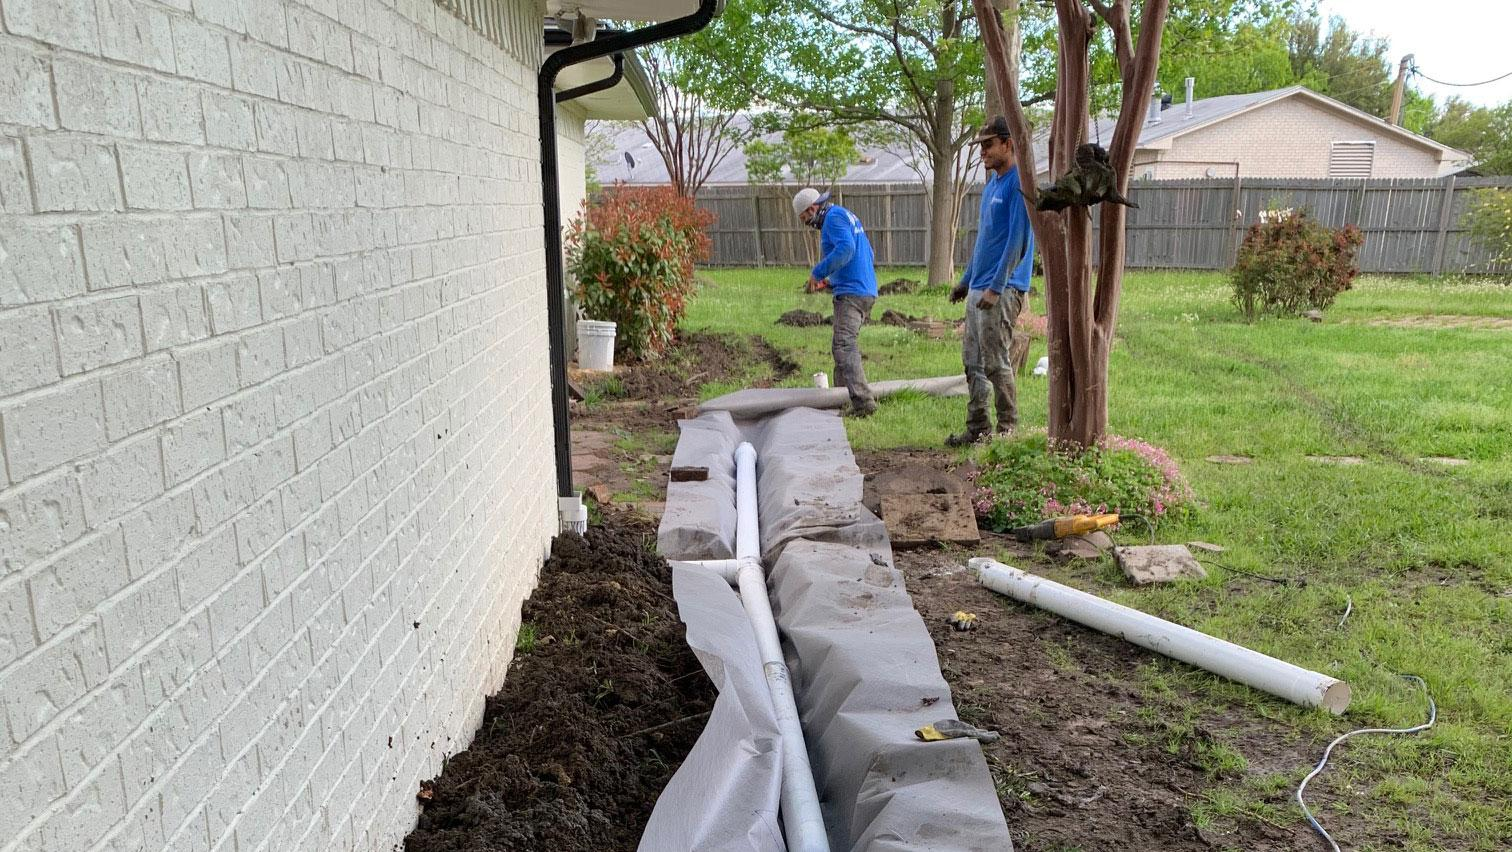 drainage contractors rockwall tx dfw drainage correction system best companies near me services fortress foundation repair systems